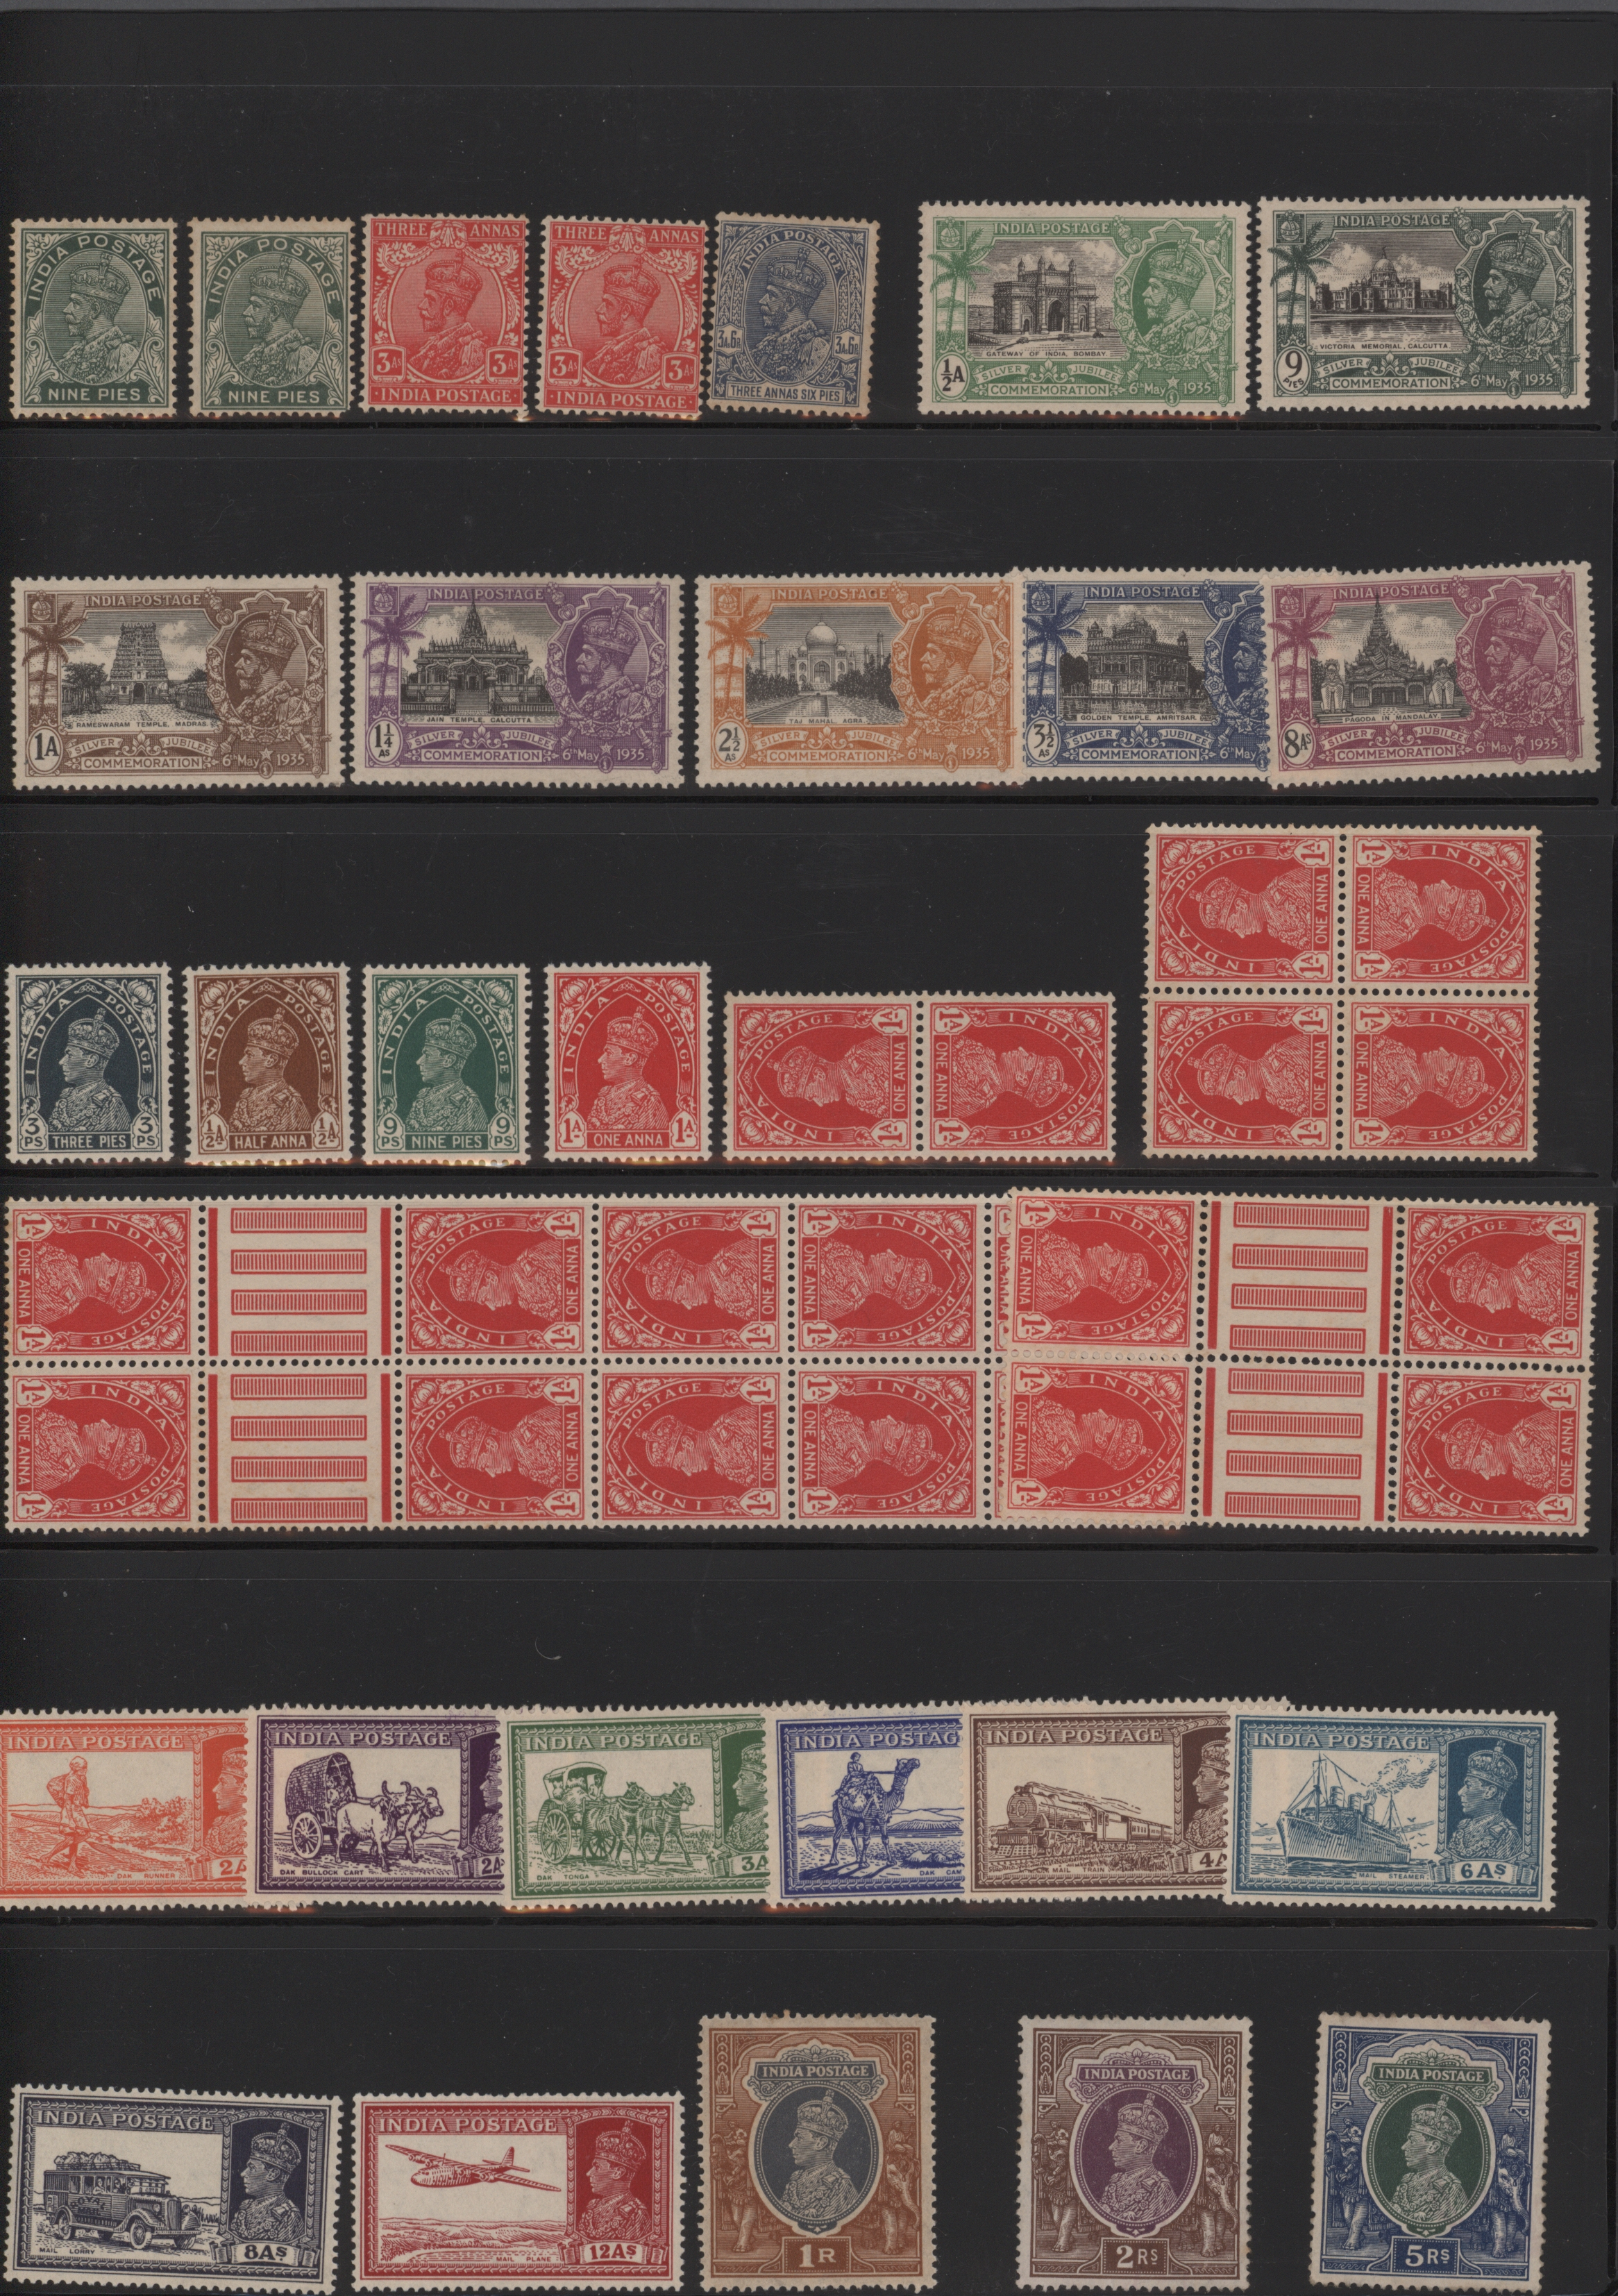 Lot 19174 - indien  -  Auktionshaus Christoph Gärtner GmbH & Co. KG Sale #47 Collections: Overseas, Thematics, Europe